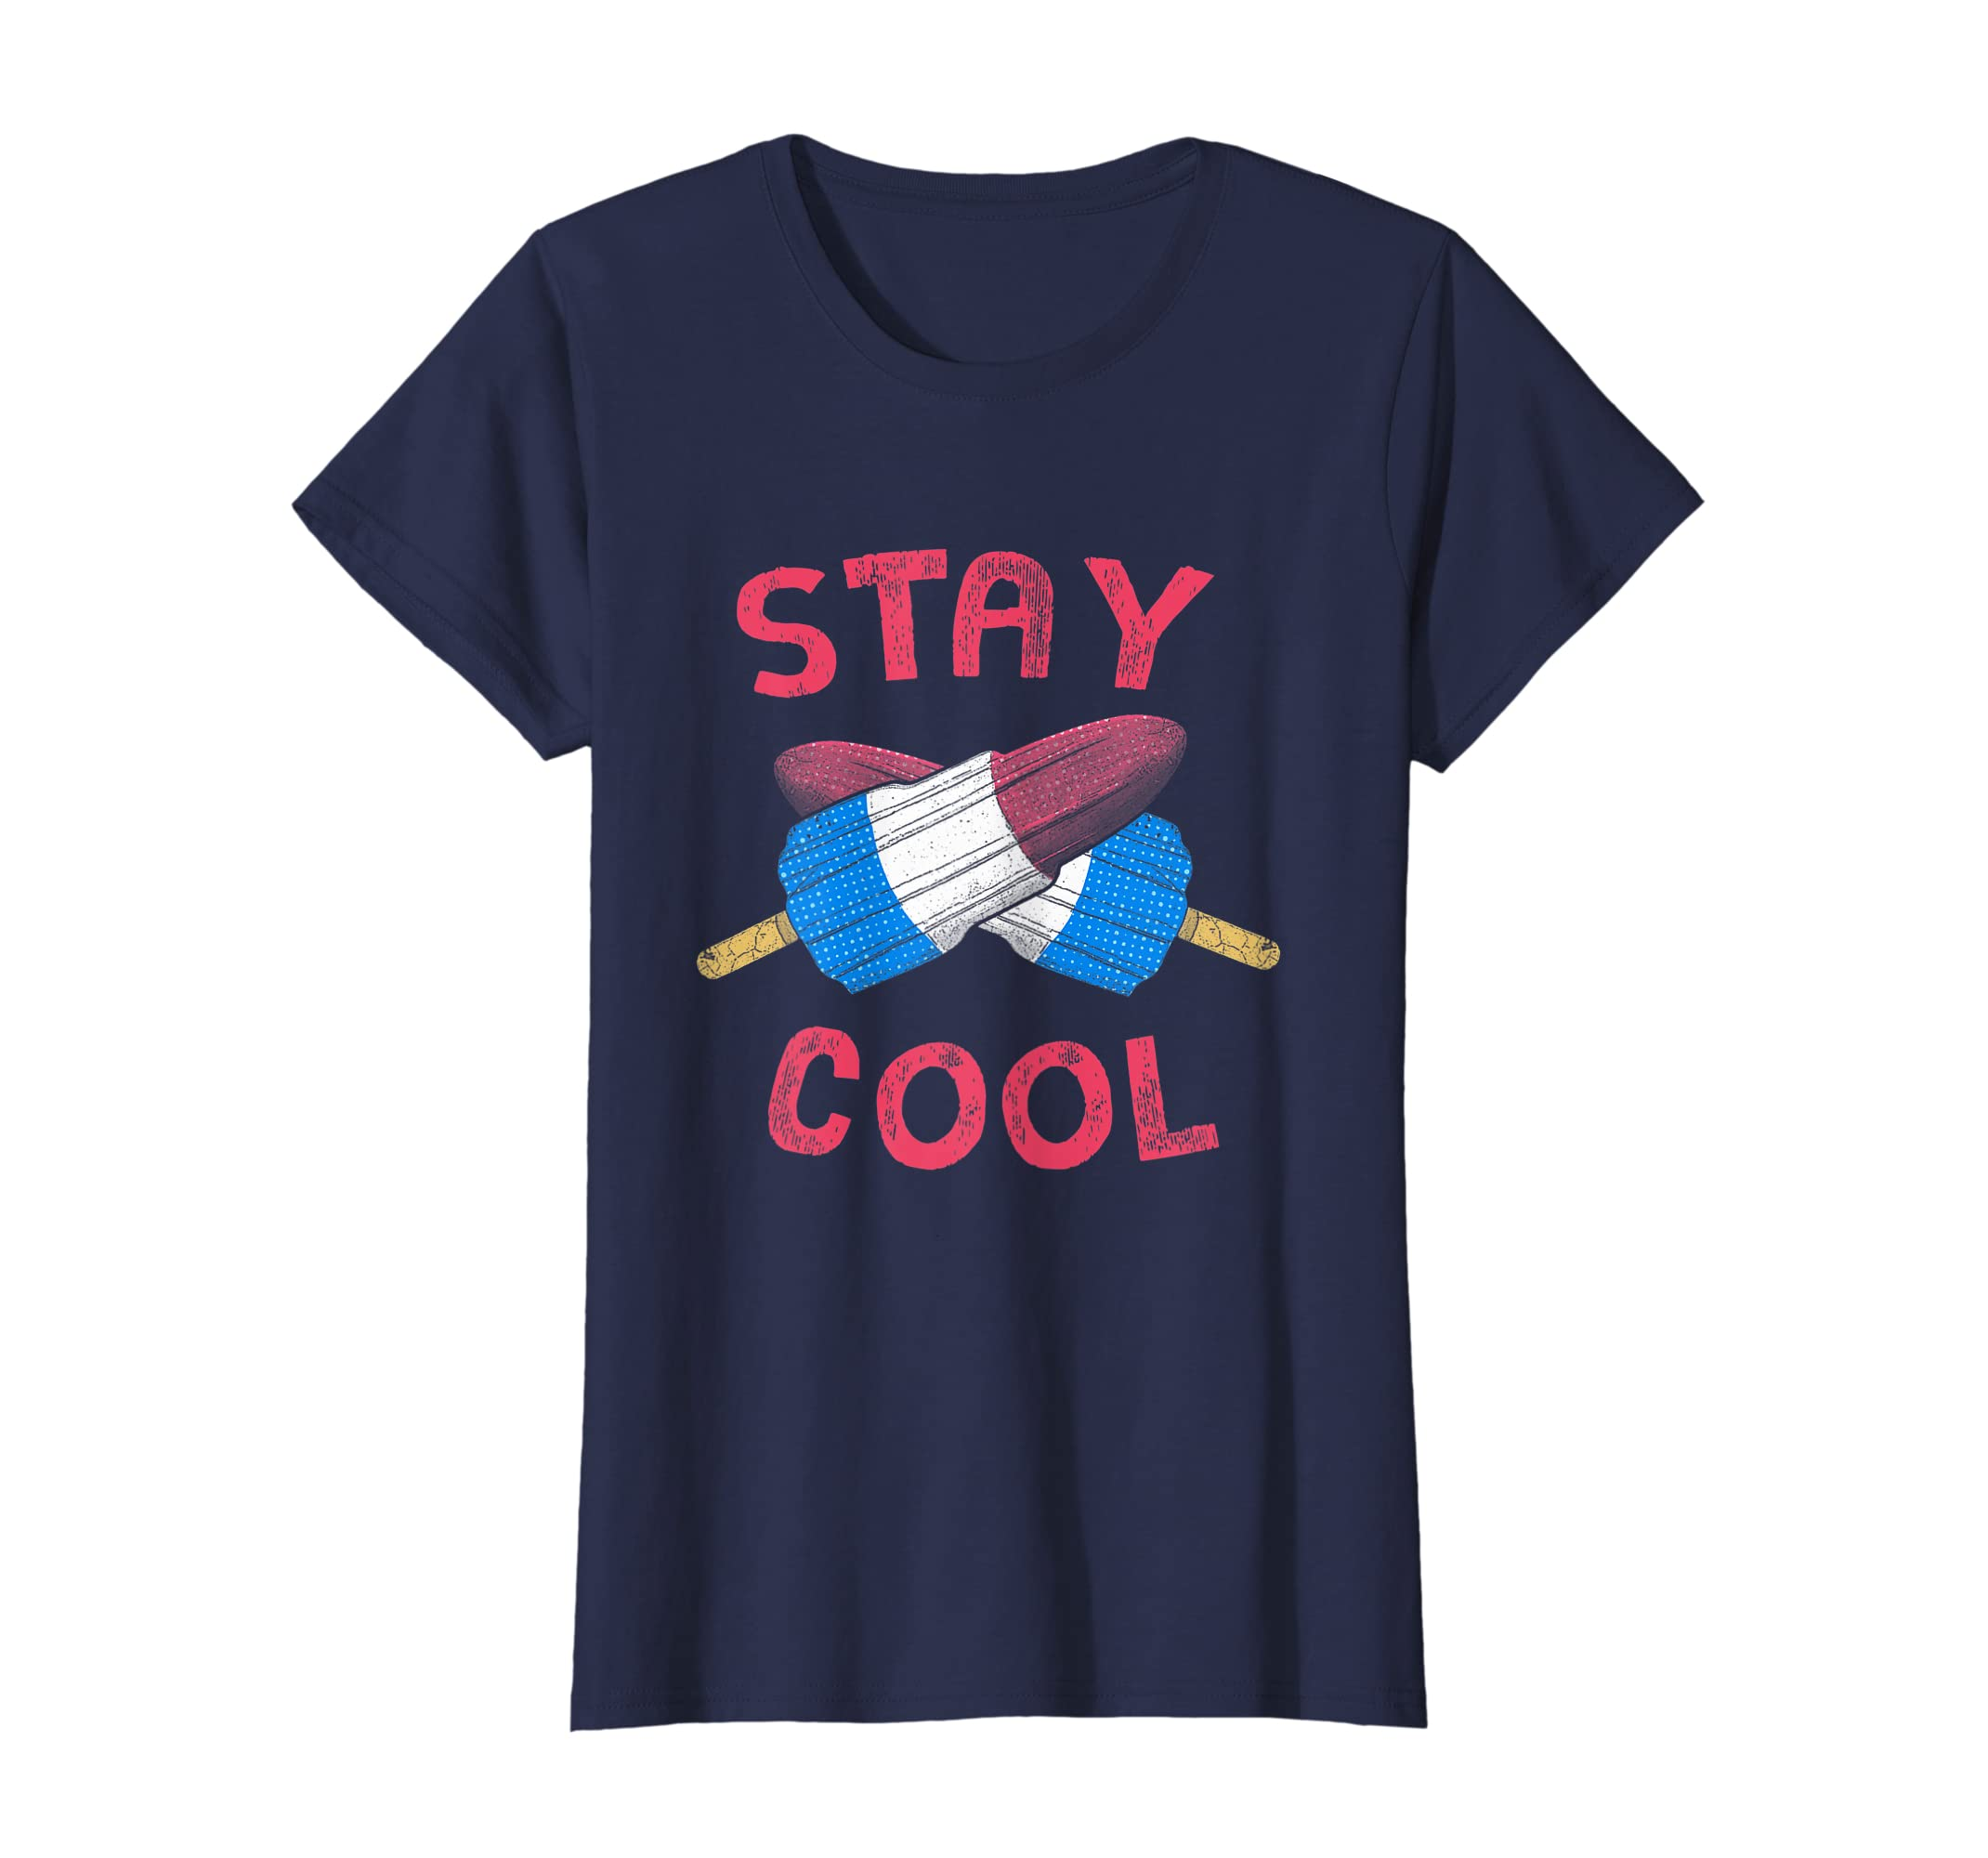 7de8ca8b2 Amazon.com: Stay Cool 4th Of July Kid Popsicle Summer Freedom T Shirt:  Clothing